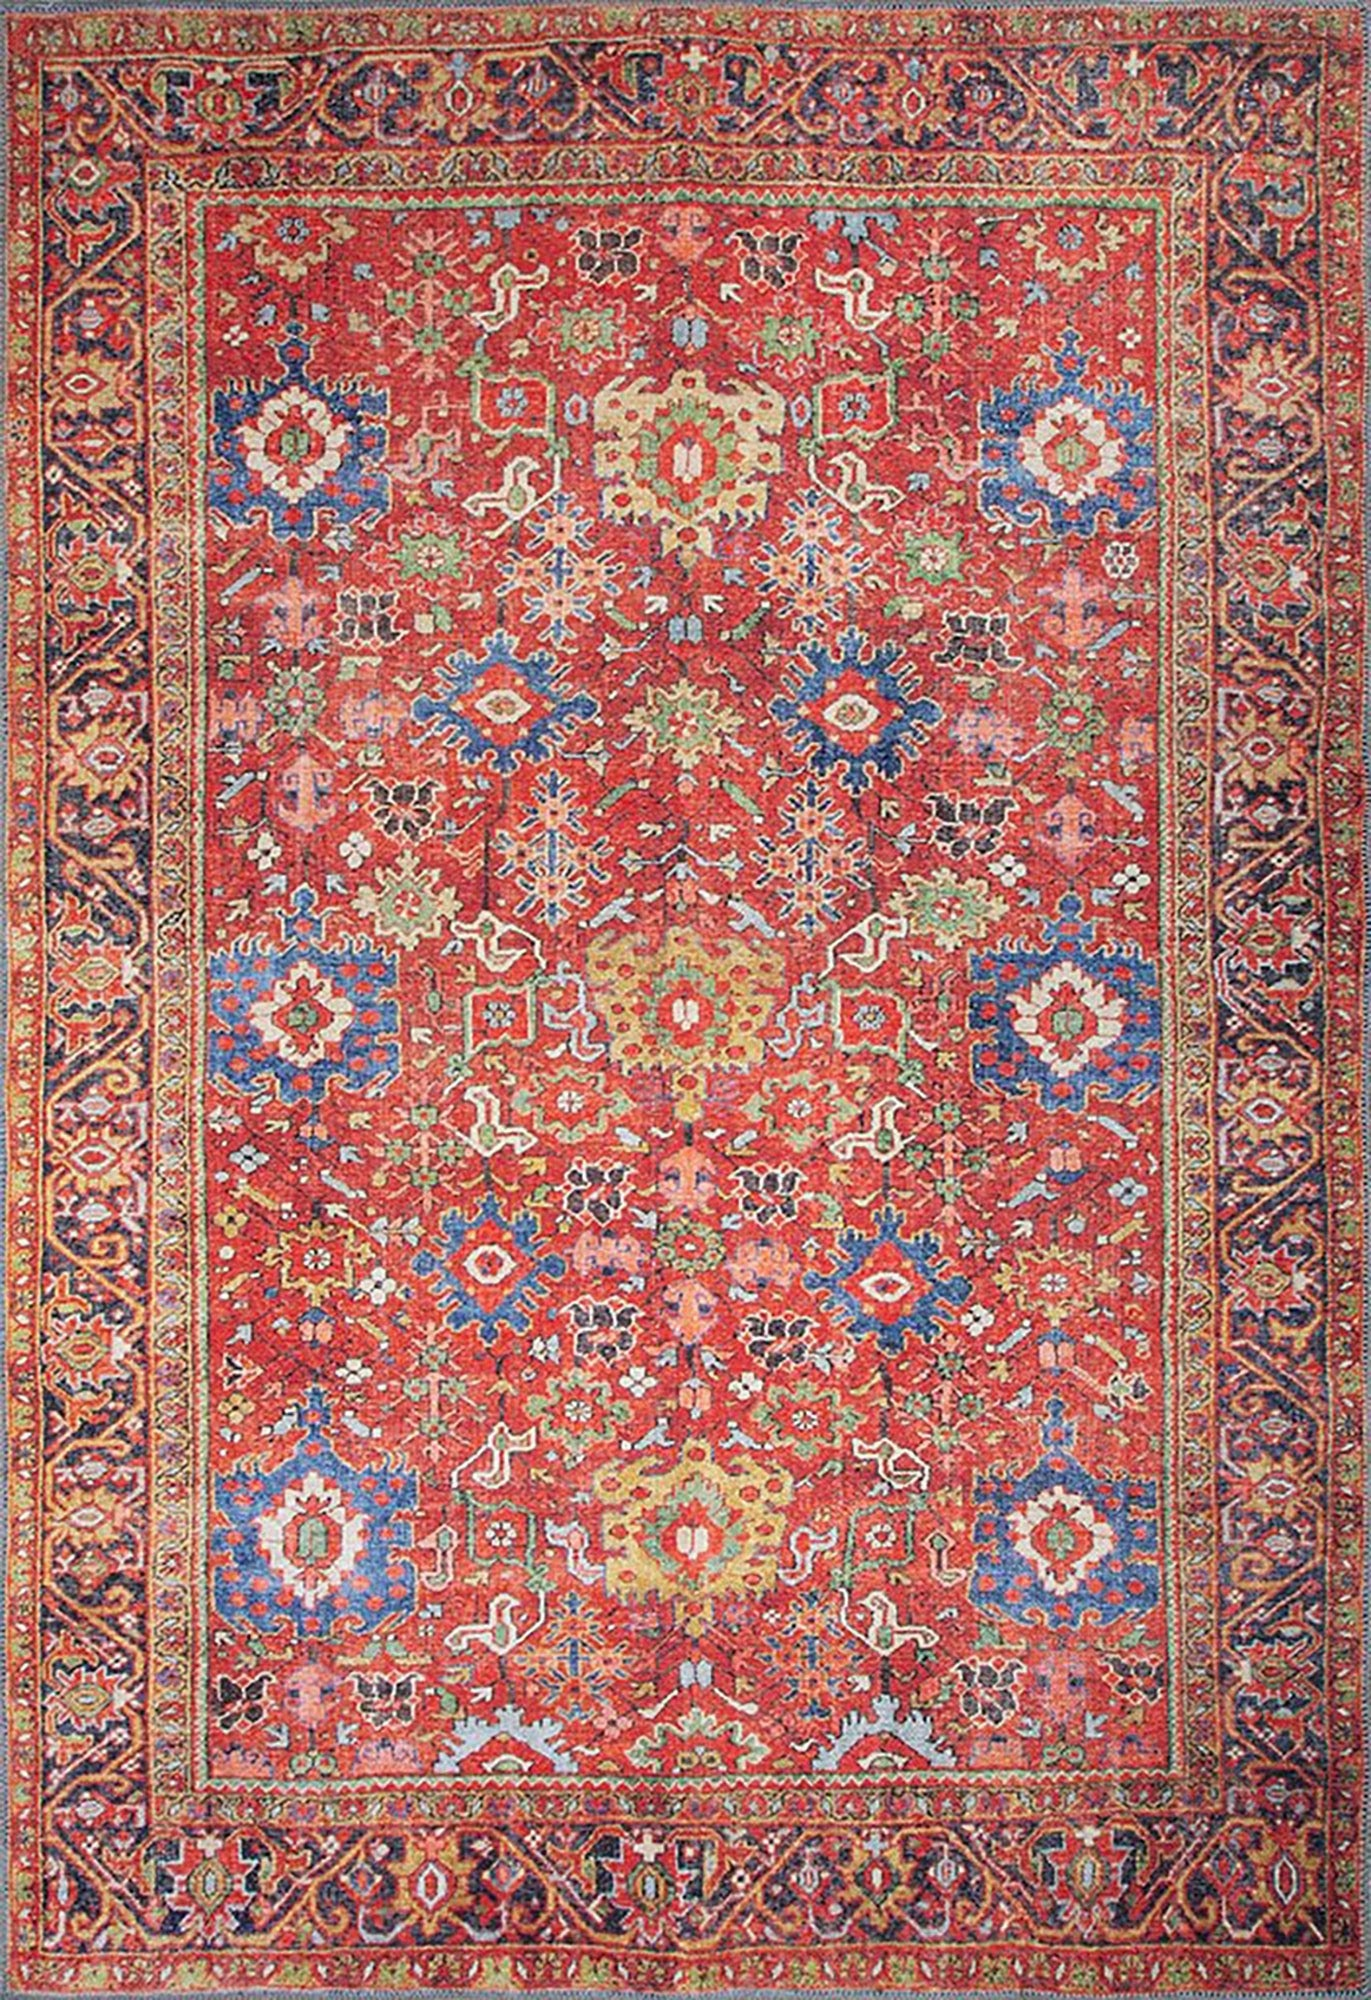 AYA | Turkish Rug, Antique looks Area rug, Unique Colorful Floral Room Decoration, Mid Century Distressed Oriental Red Luxury Carpet Idea